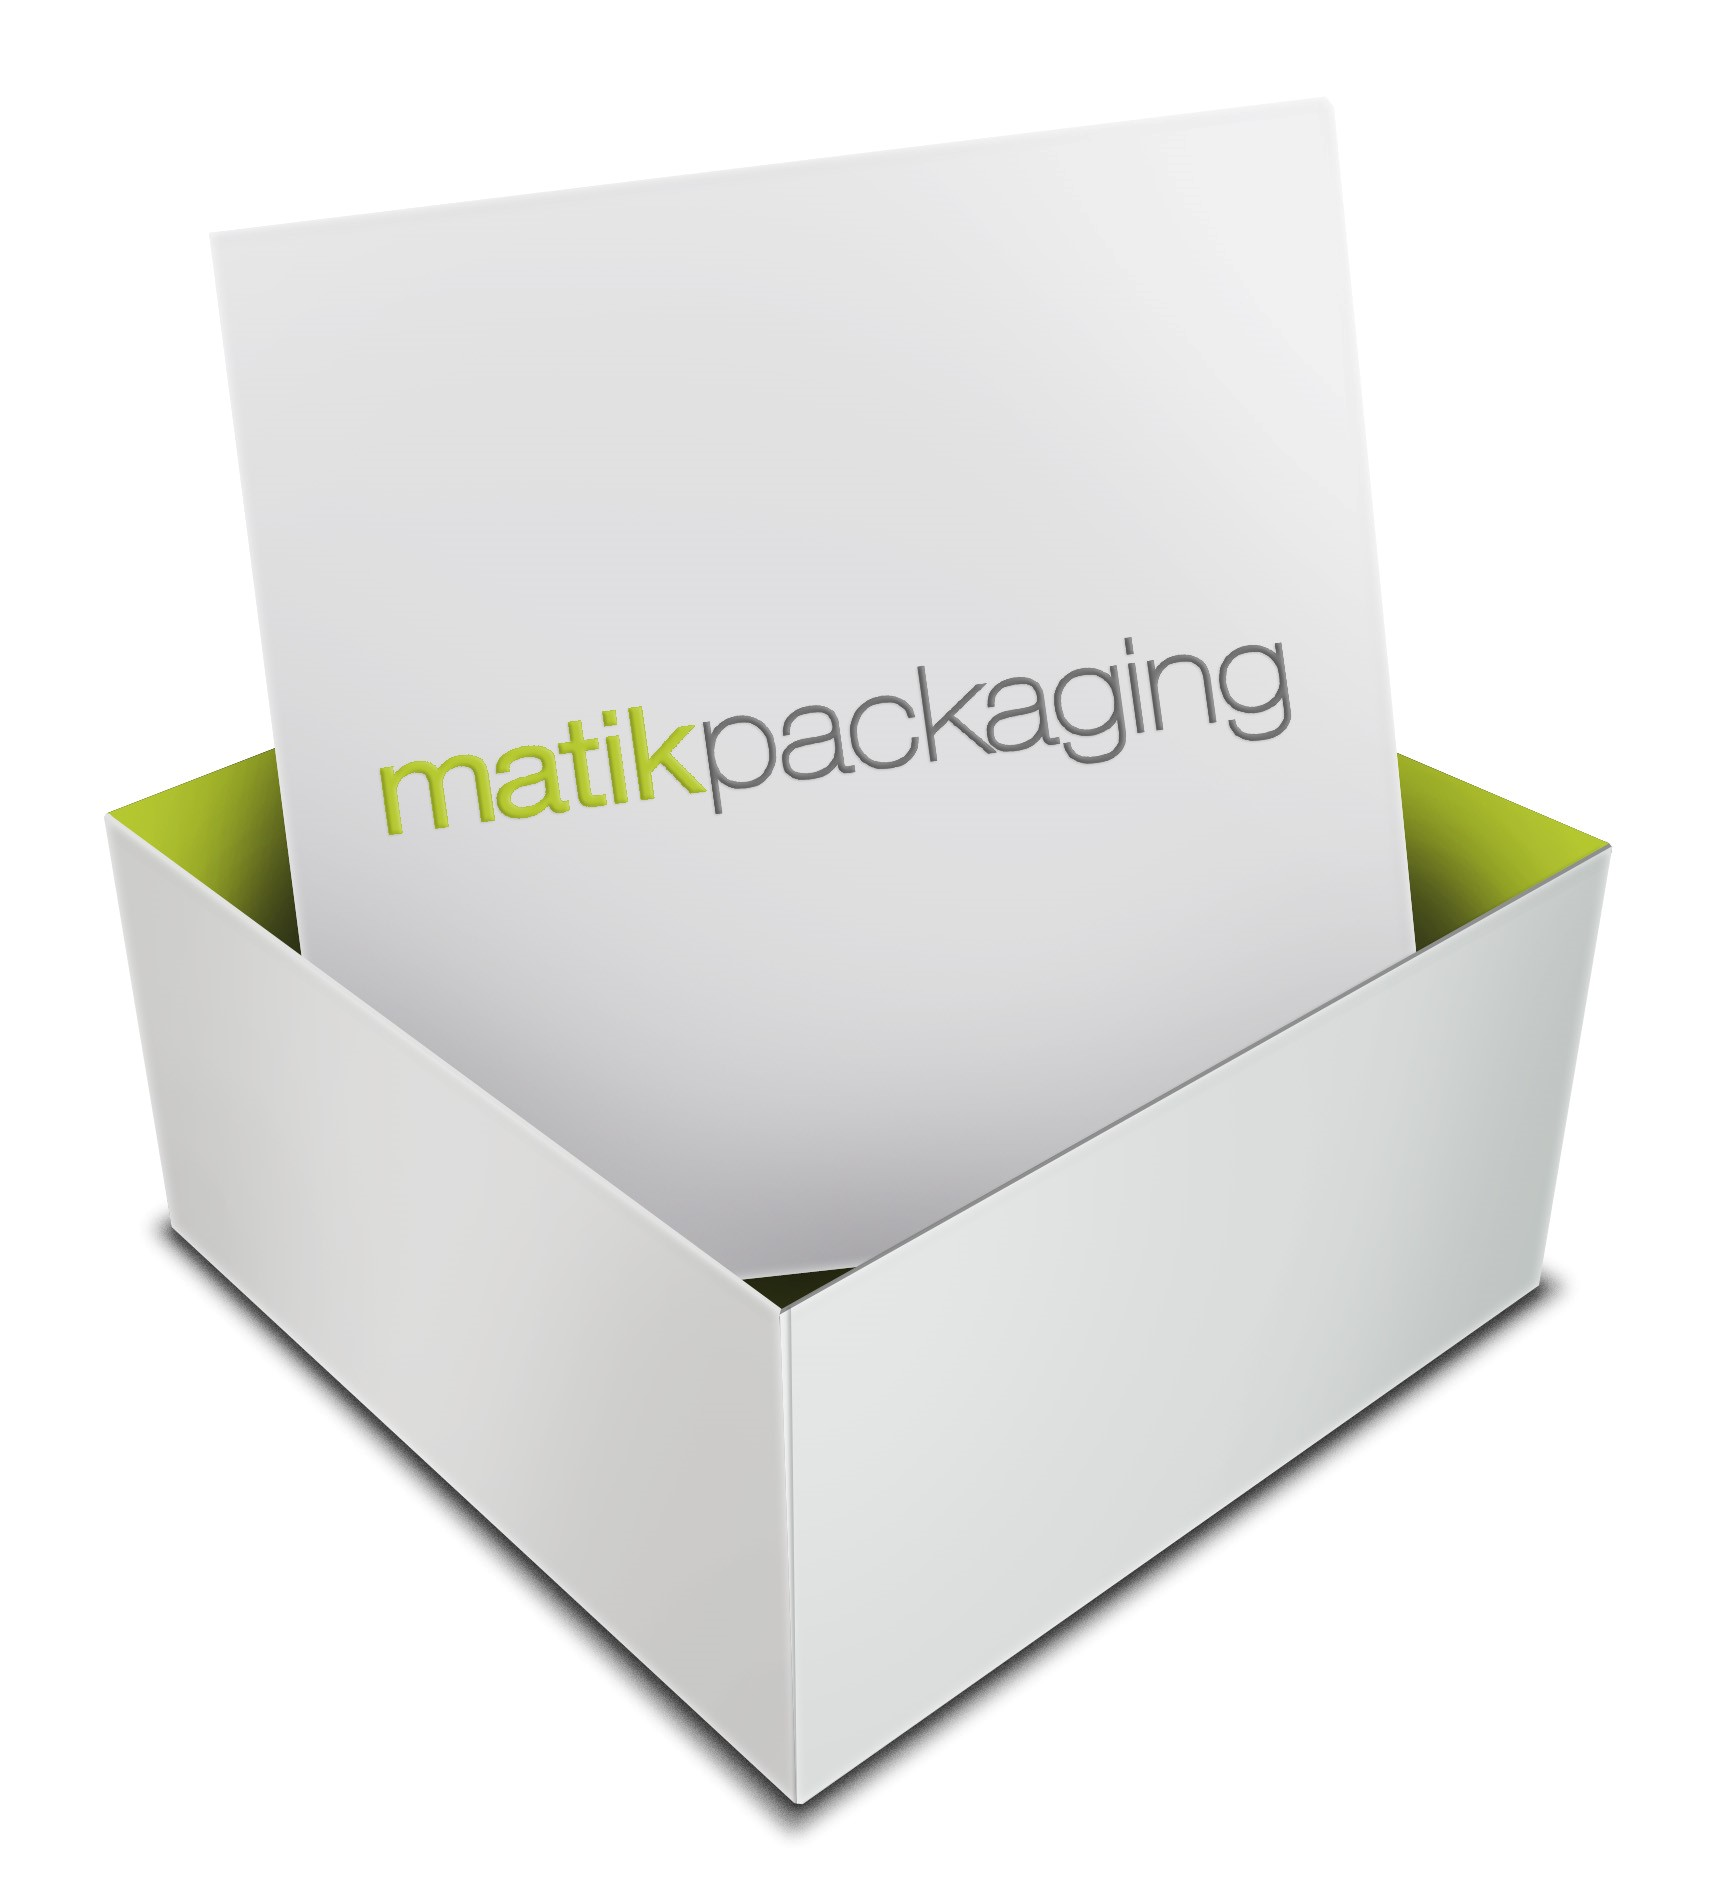 Matik Packaging